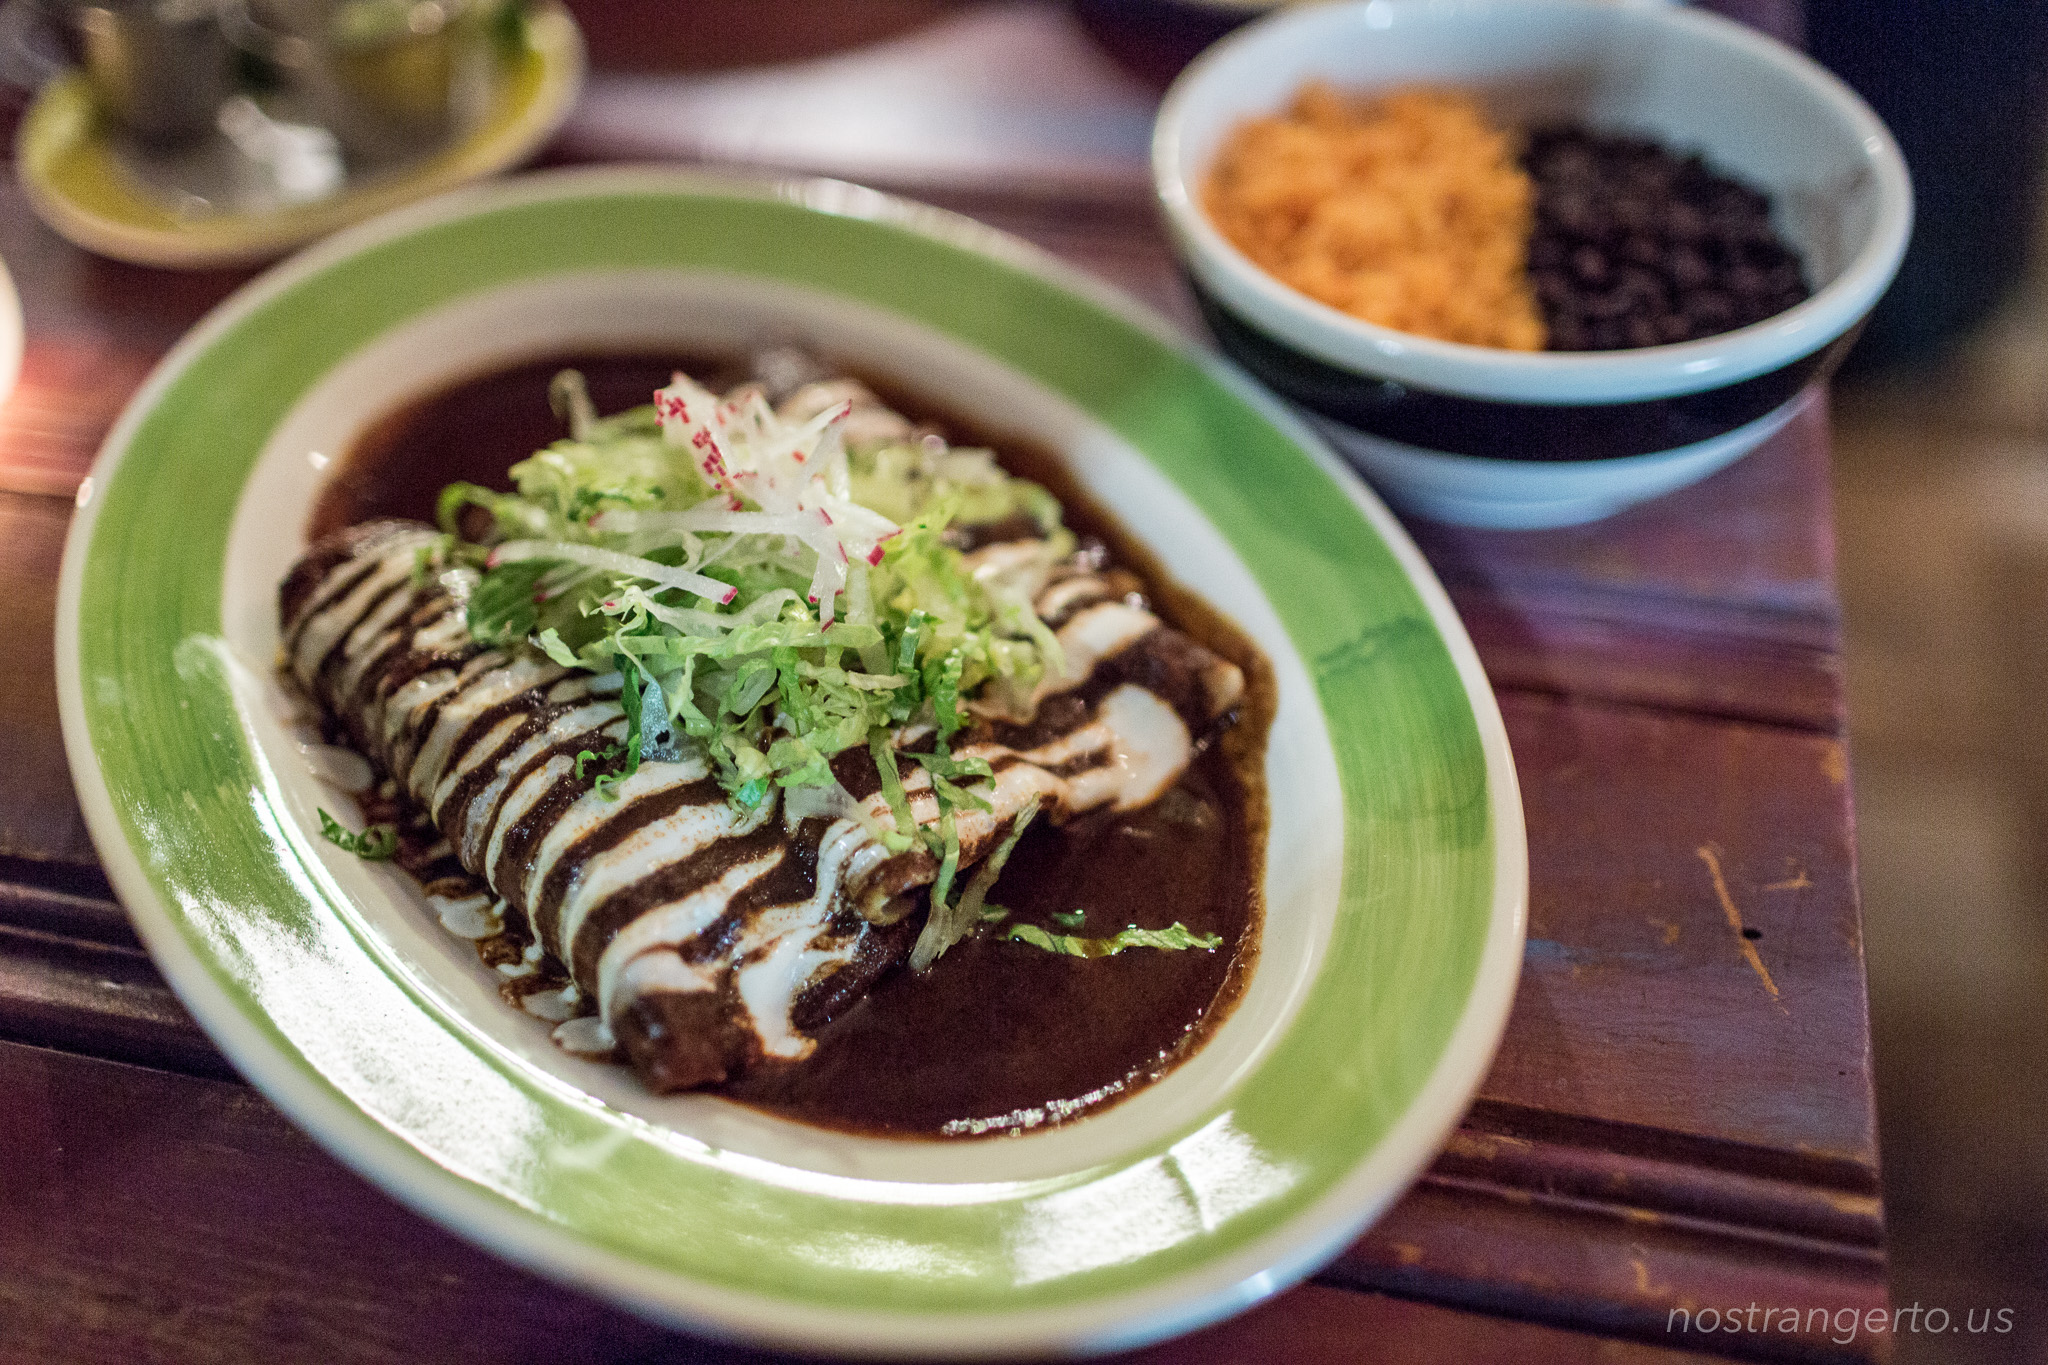 Mole Enchilada from the vegan menu